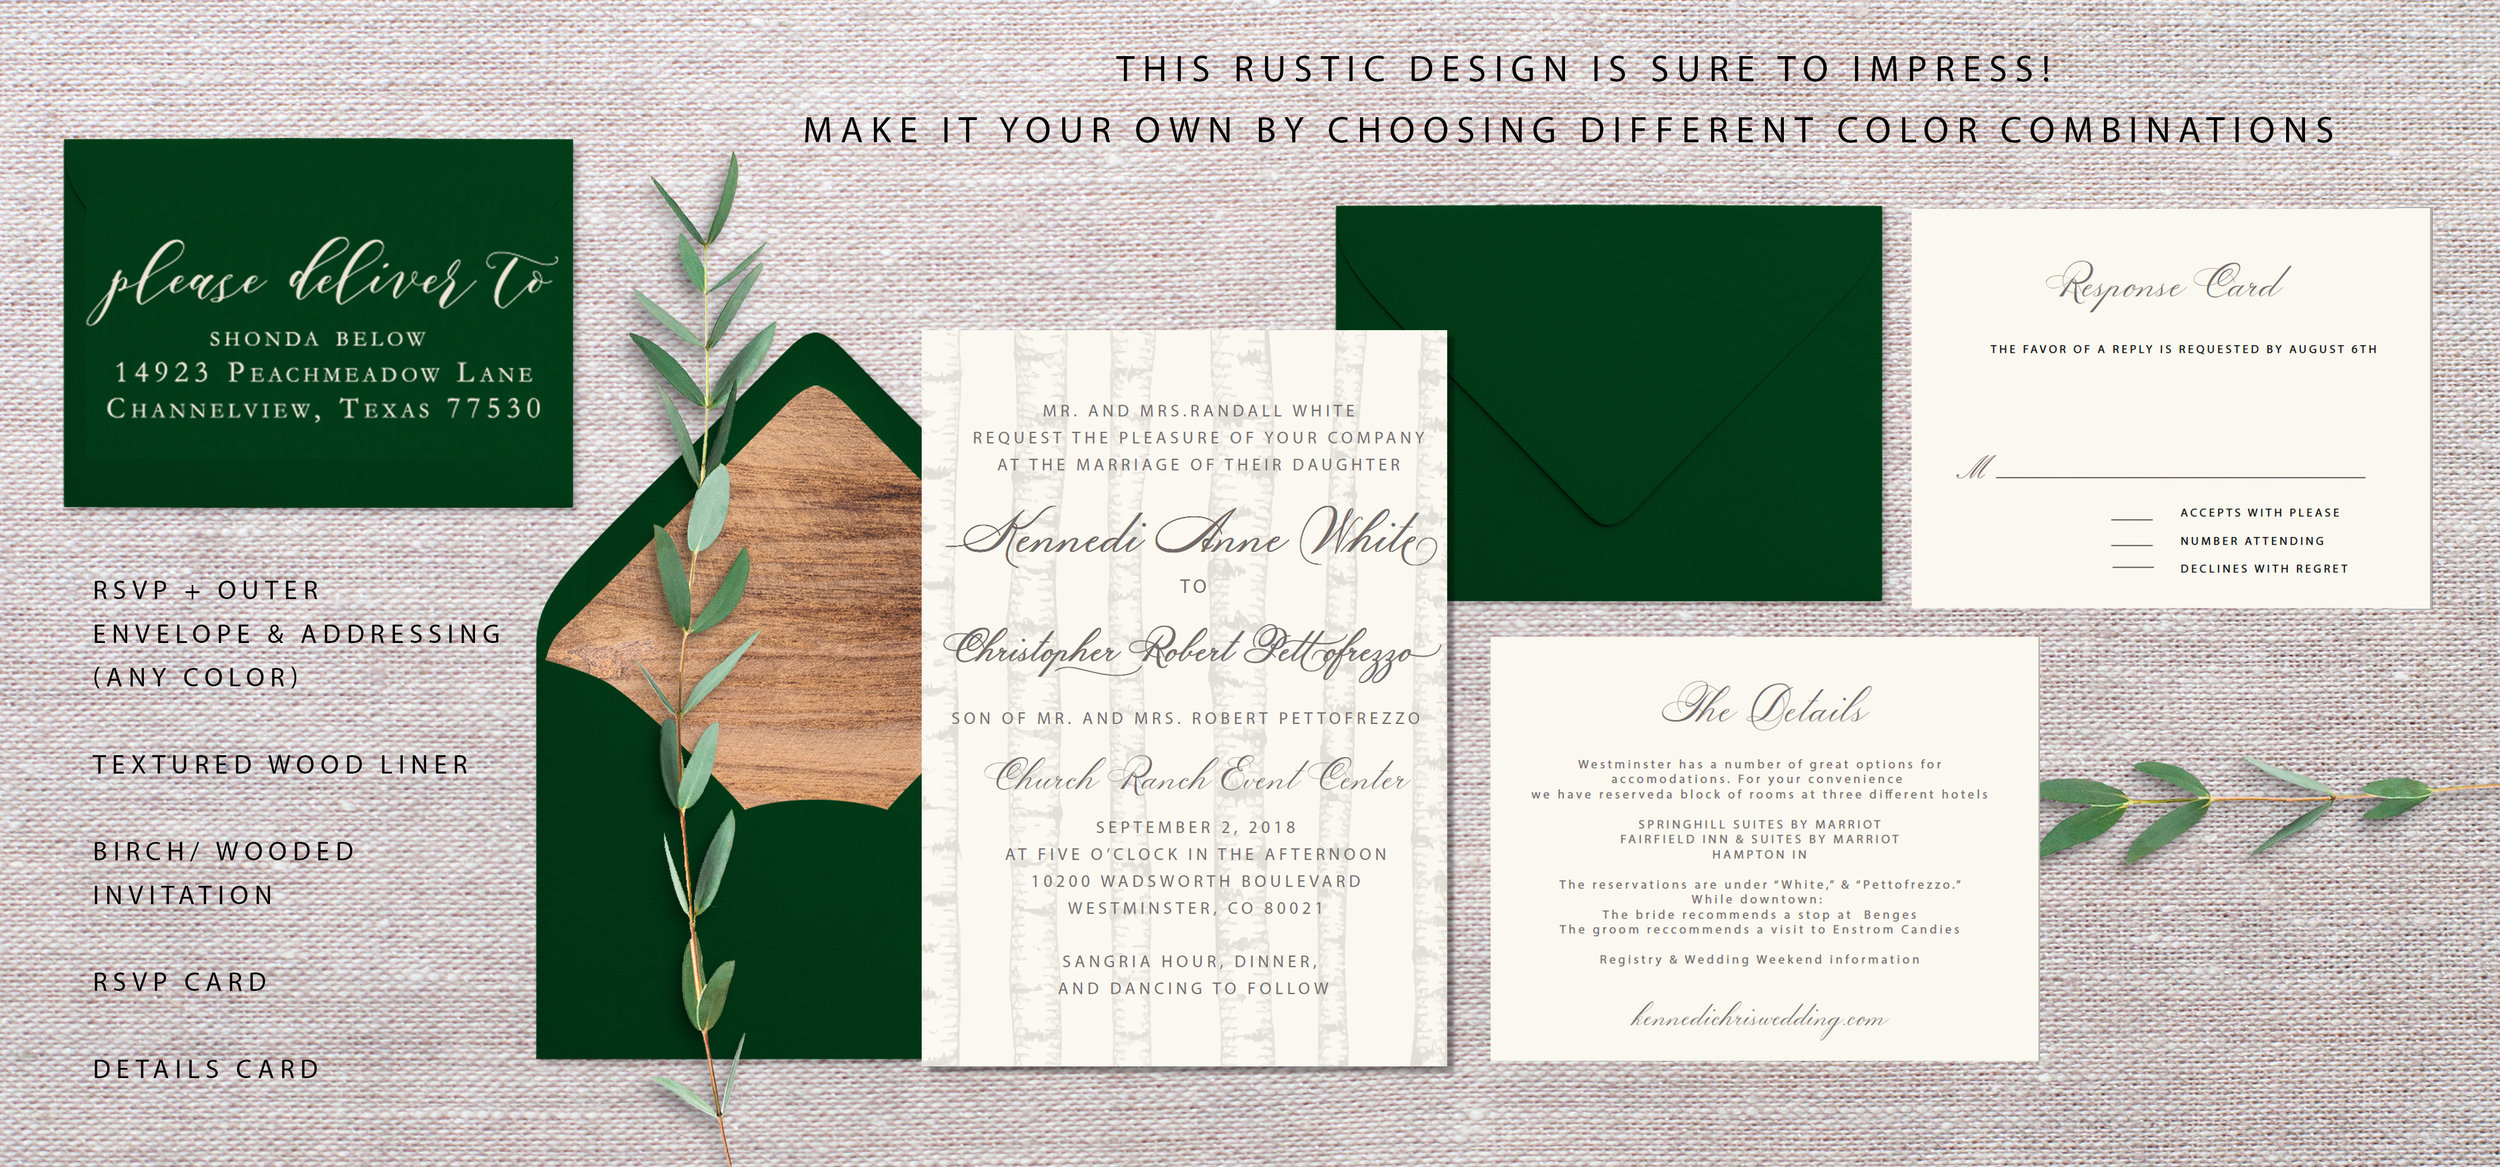 Here is another option, instead of using imagery on the bottom, this design was inspired by the Church Ranch logo. The birch wood creates a type of watermark on the invitation. This is much more simplistic, but definitely another thoughtful option :)    Wax seal removed    Envelope addressing for both rsvp and outer envelope = $1.20 envelope liner = $2.05 Envelope A7 size = $0.50 Envelope A2 size = $0.45 Invitation/ Ivory cardstock = $1.04 Details Card = $0.88 Information Card = $0.88     Total: $7.00